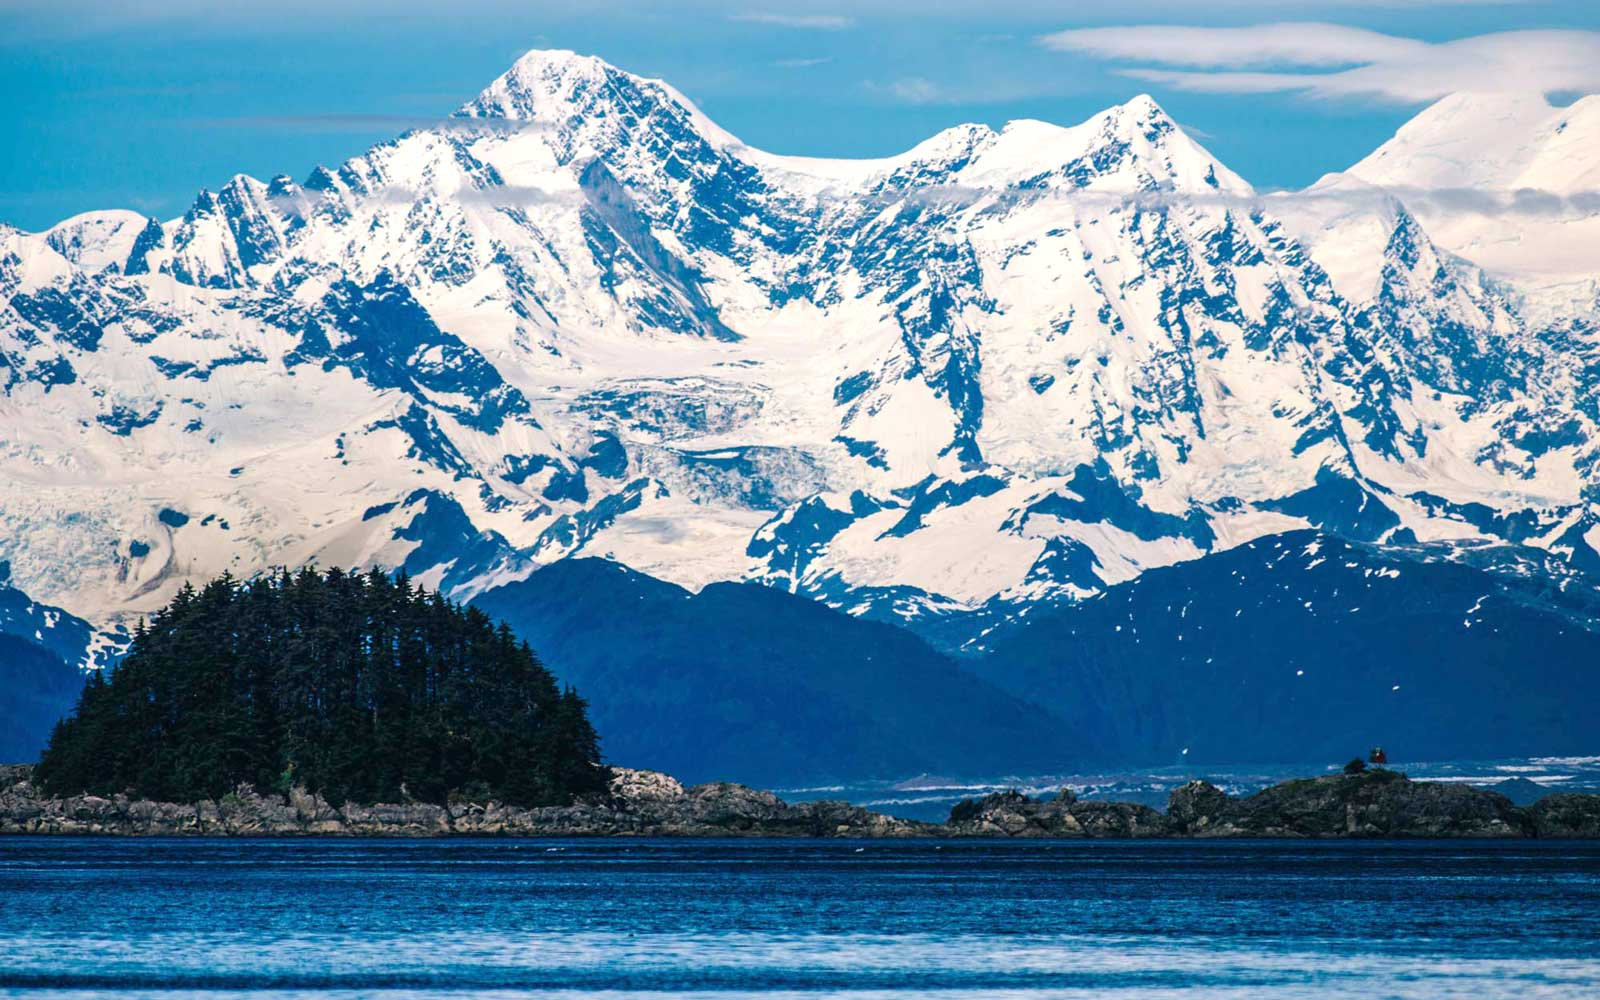 Sail Across Alaska's Prince William Sound on This Seven-night Adventure Cruise